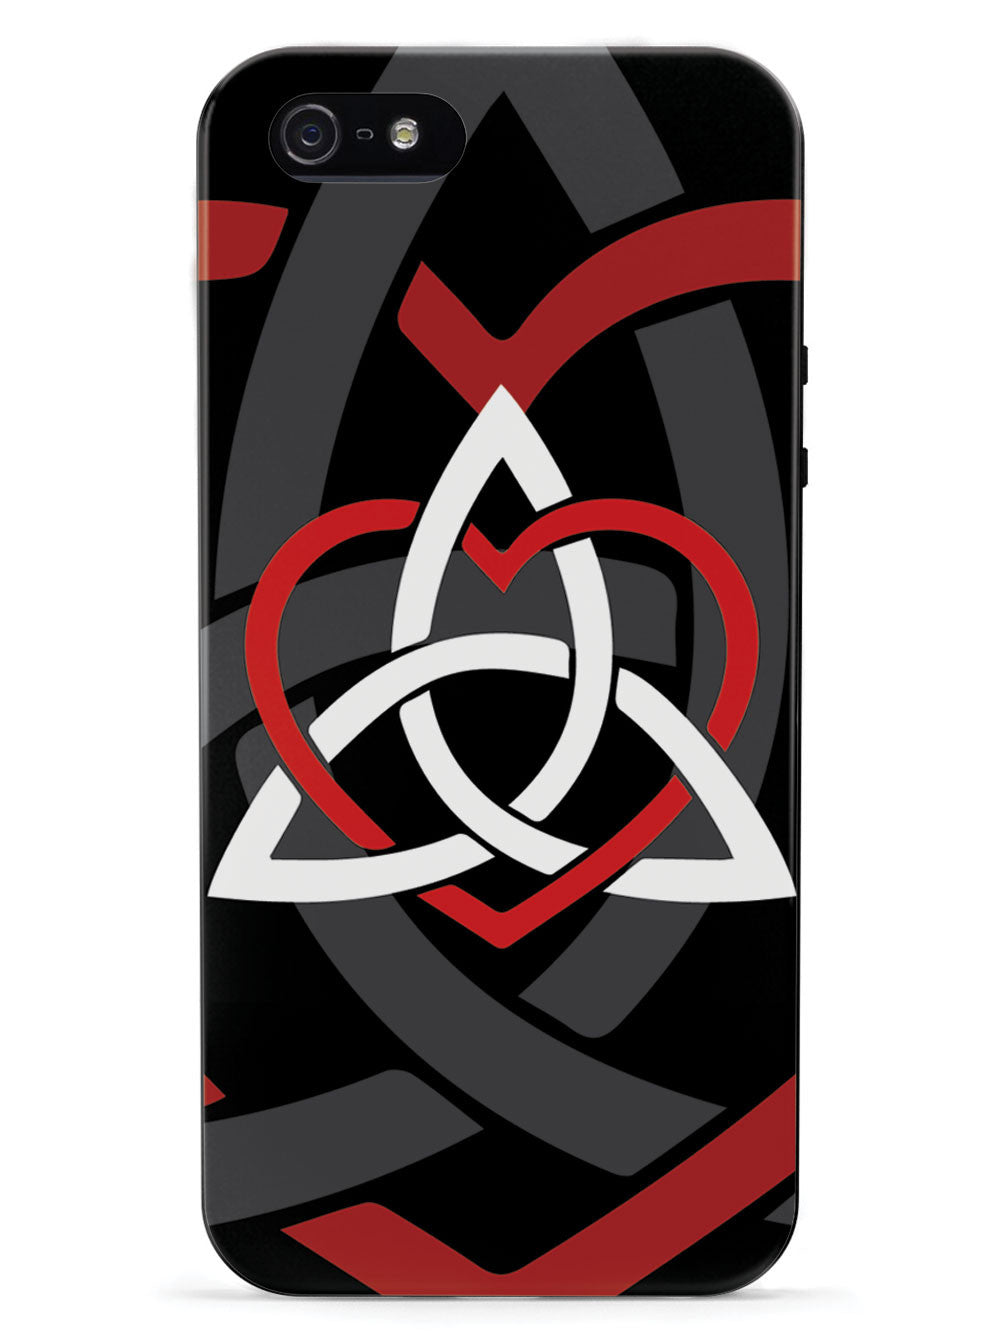 Celtic Sisters Knot - Red - Black Case